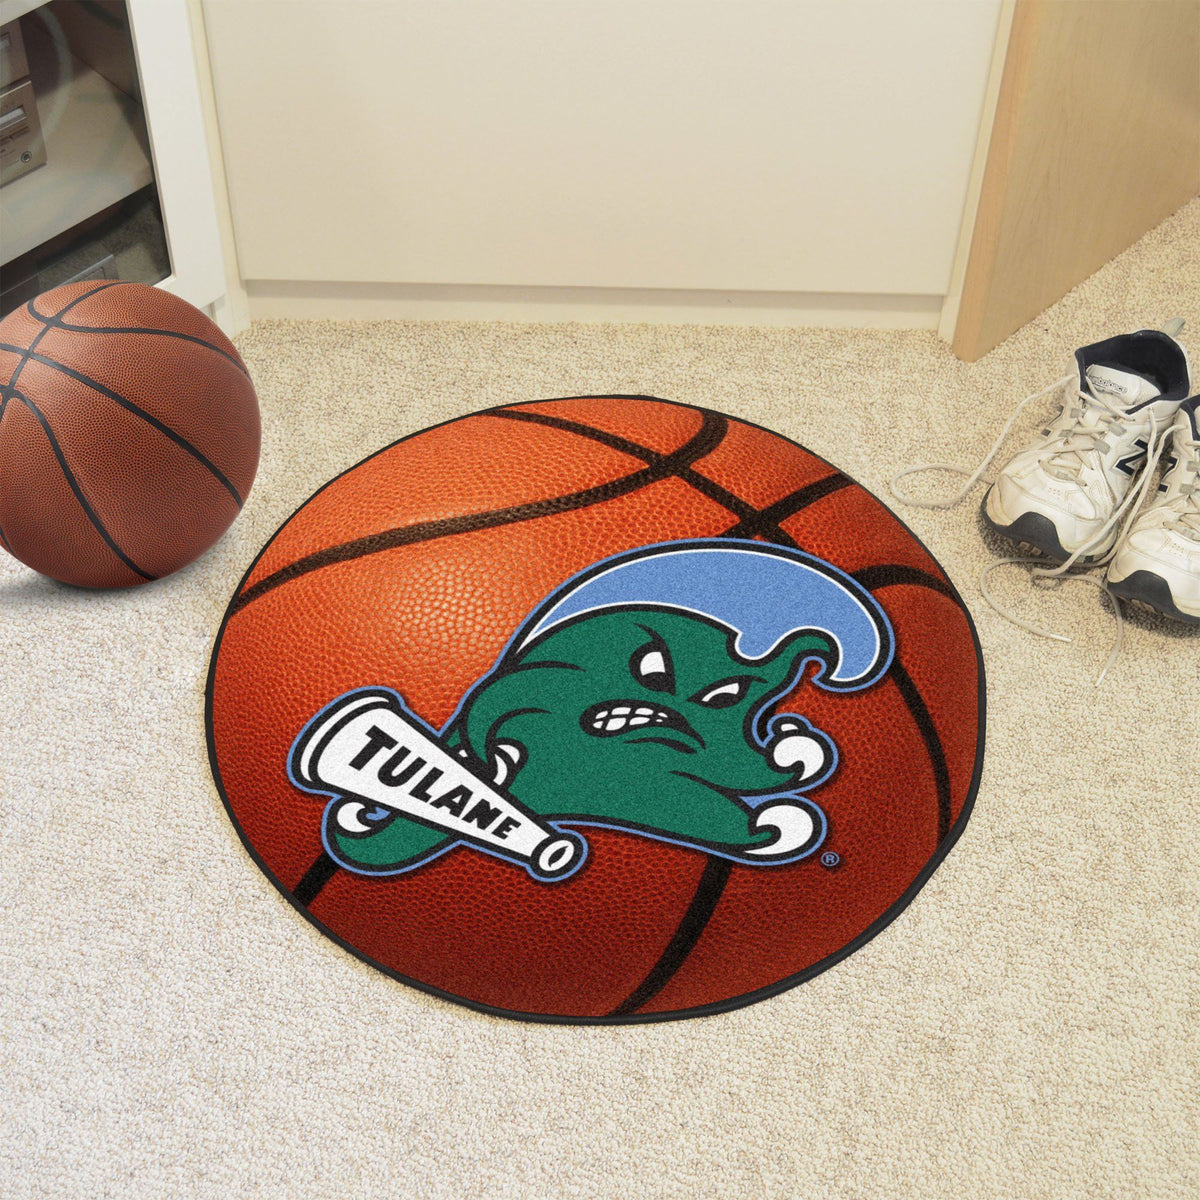 Collegiate - Basketball Mat: T - Z Collegiate Mats, Rectangular Mats, Basketball Mat, Collegiate, Home Fan Mats Tulane